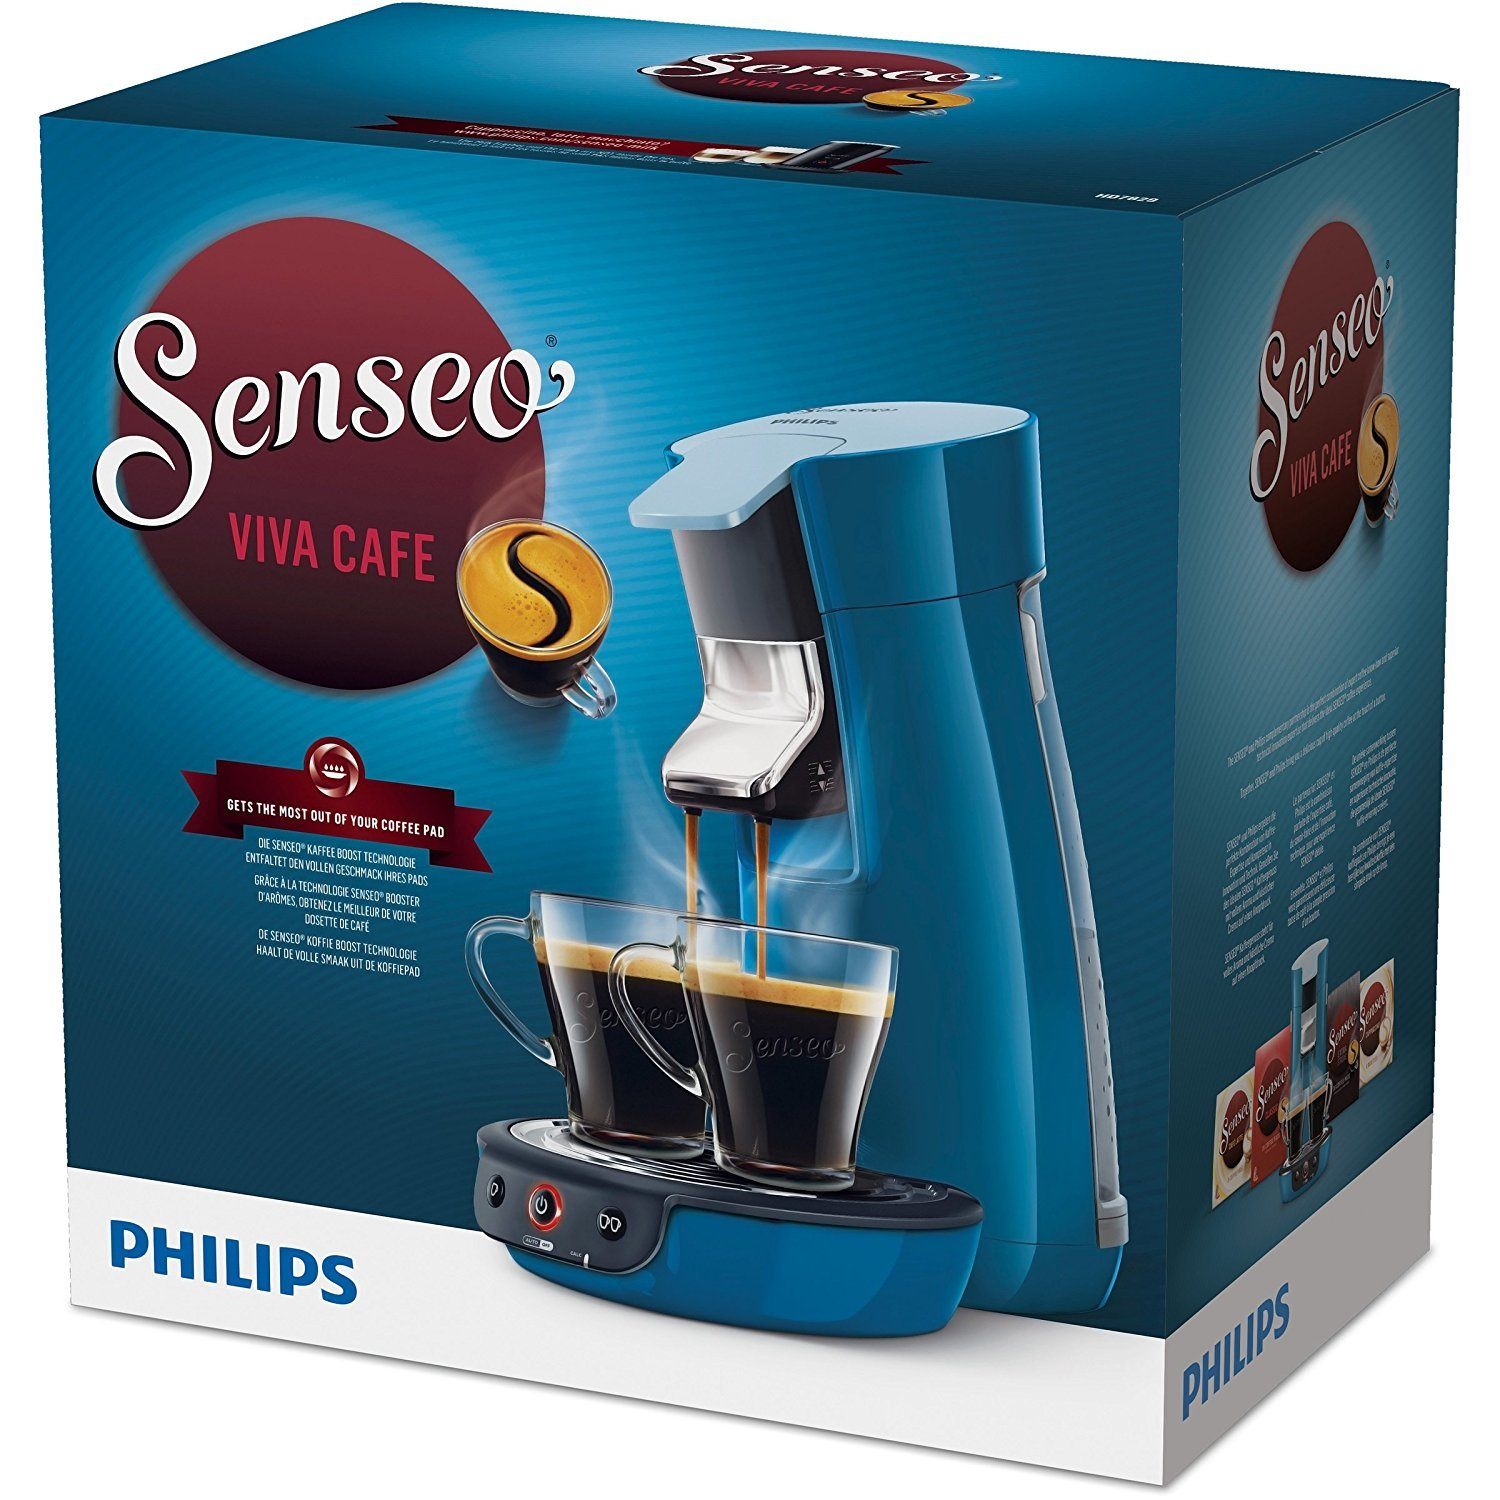 philips hd 7829 70 senseo viva caf test kaffeepadmaschine. Black Bedroom Furniture Sets. Home Design Ideas